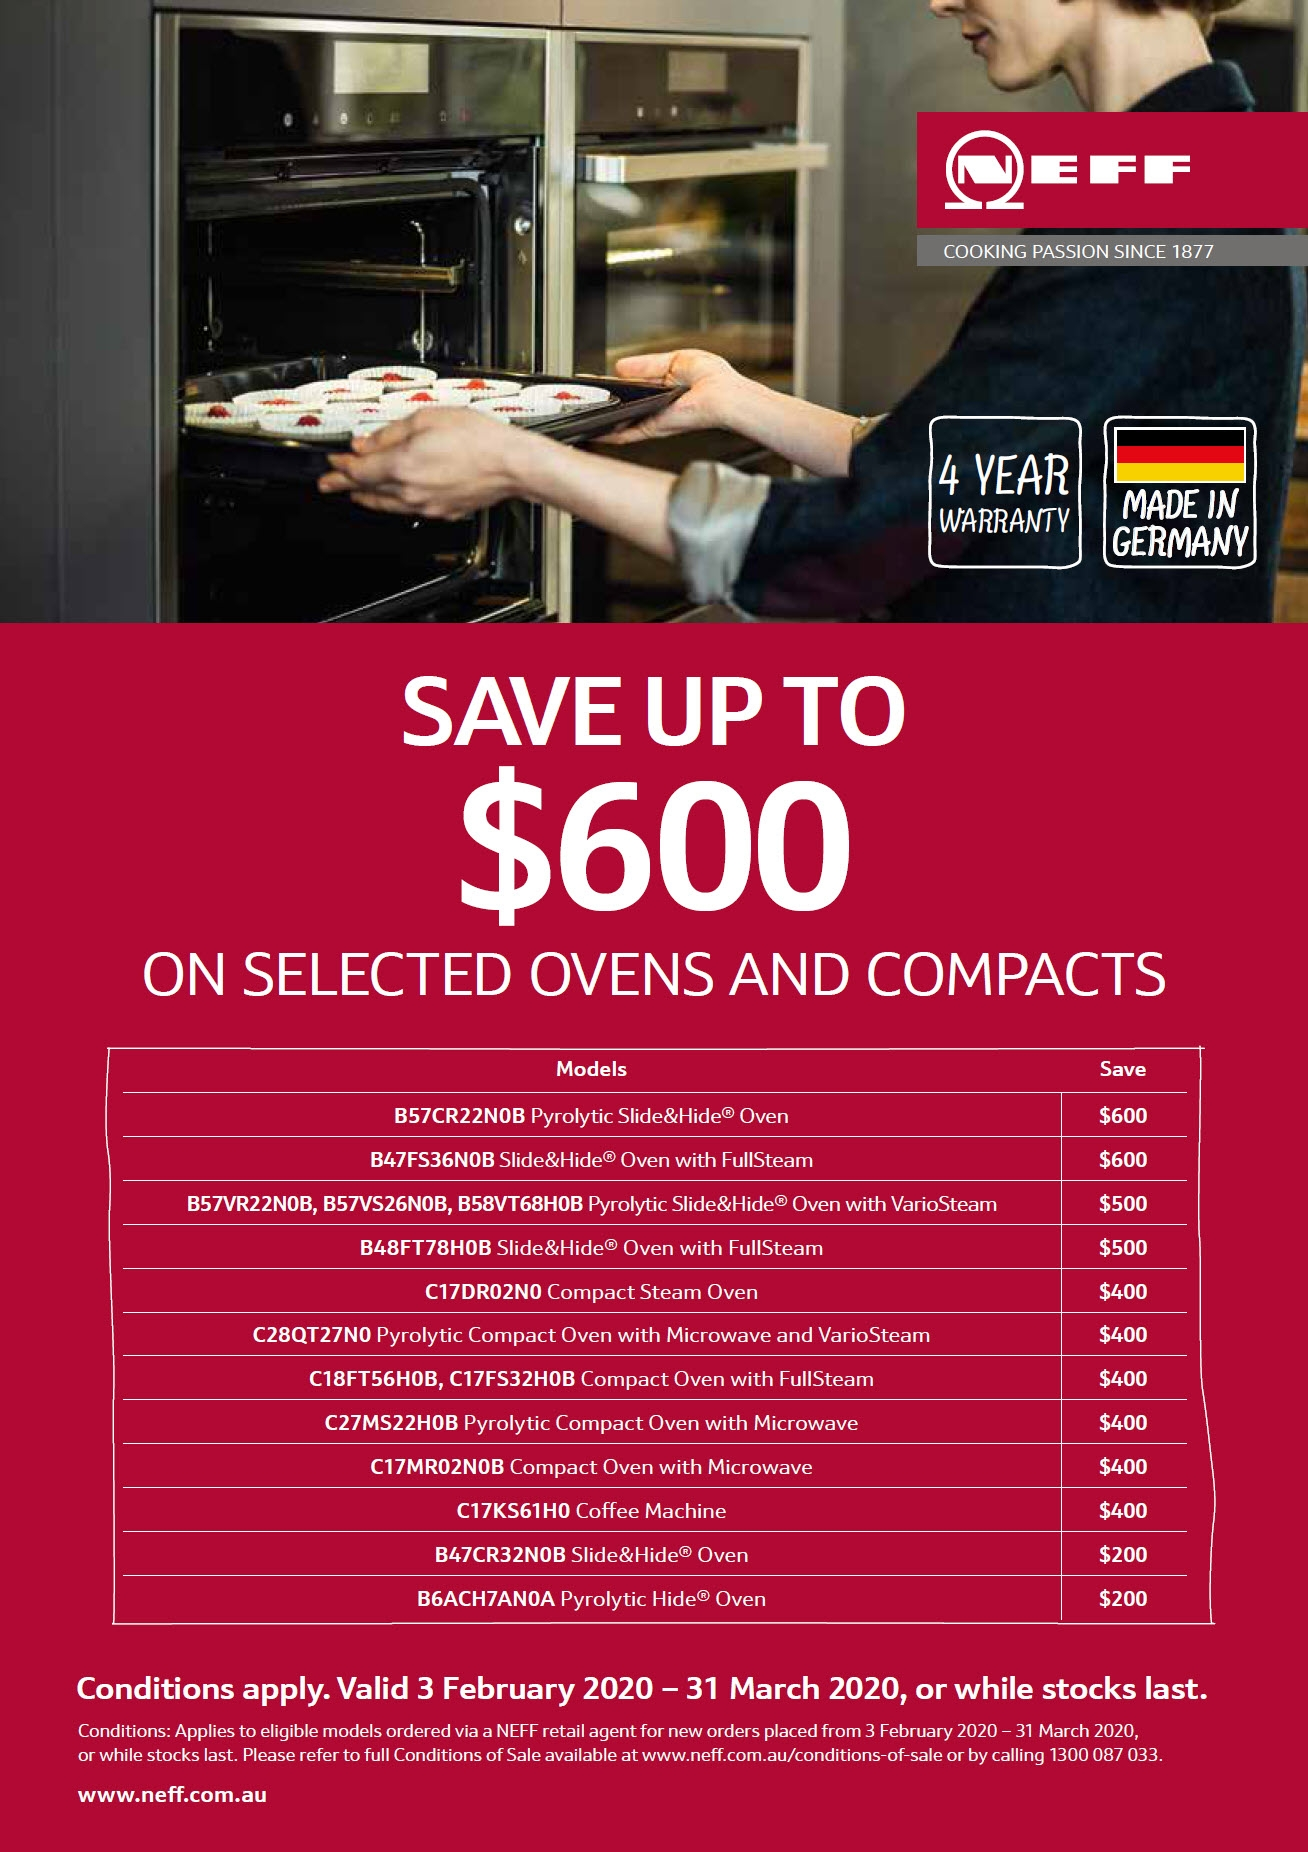 NEFF Save upto $600 on Selected Oven and Compacts